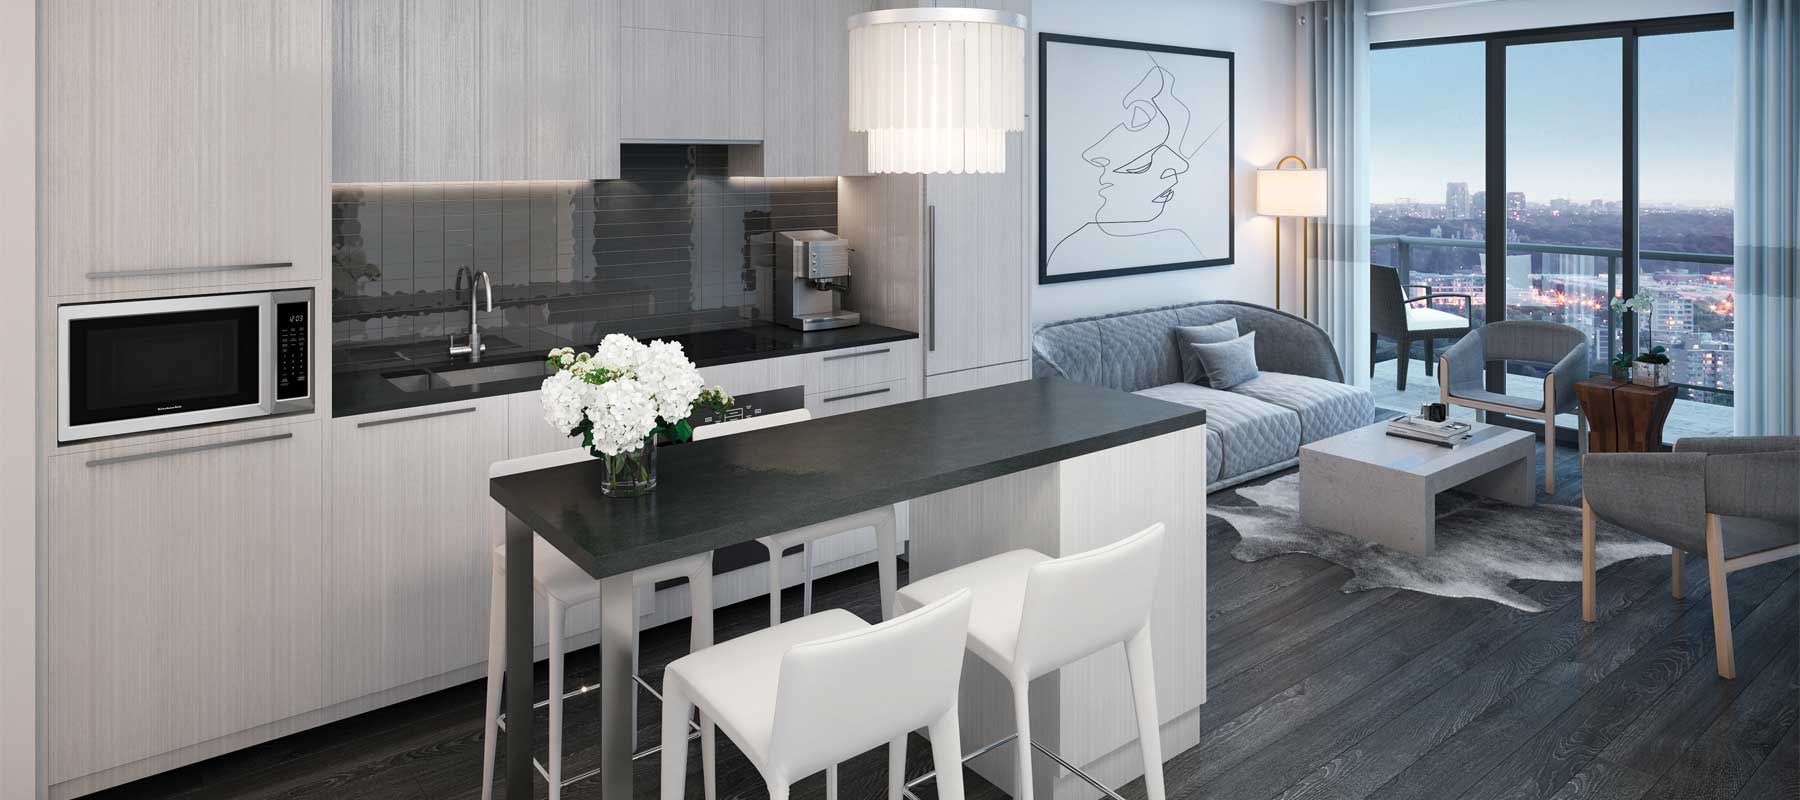 Suite kitchen rendering of Sixty-Five Broadway Condos.